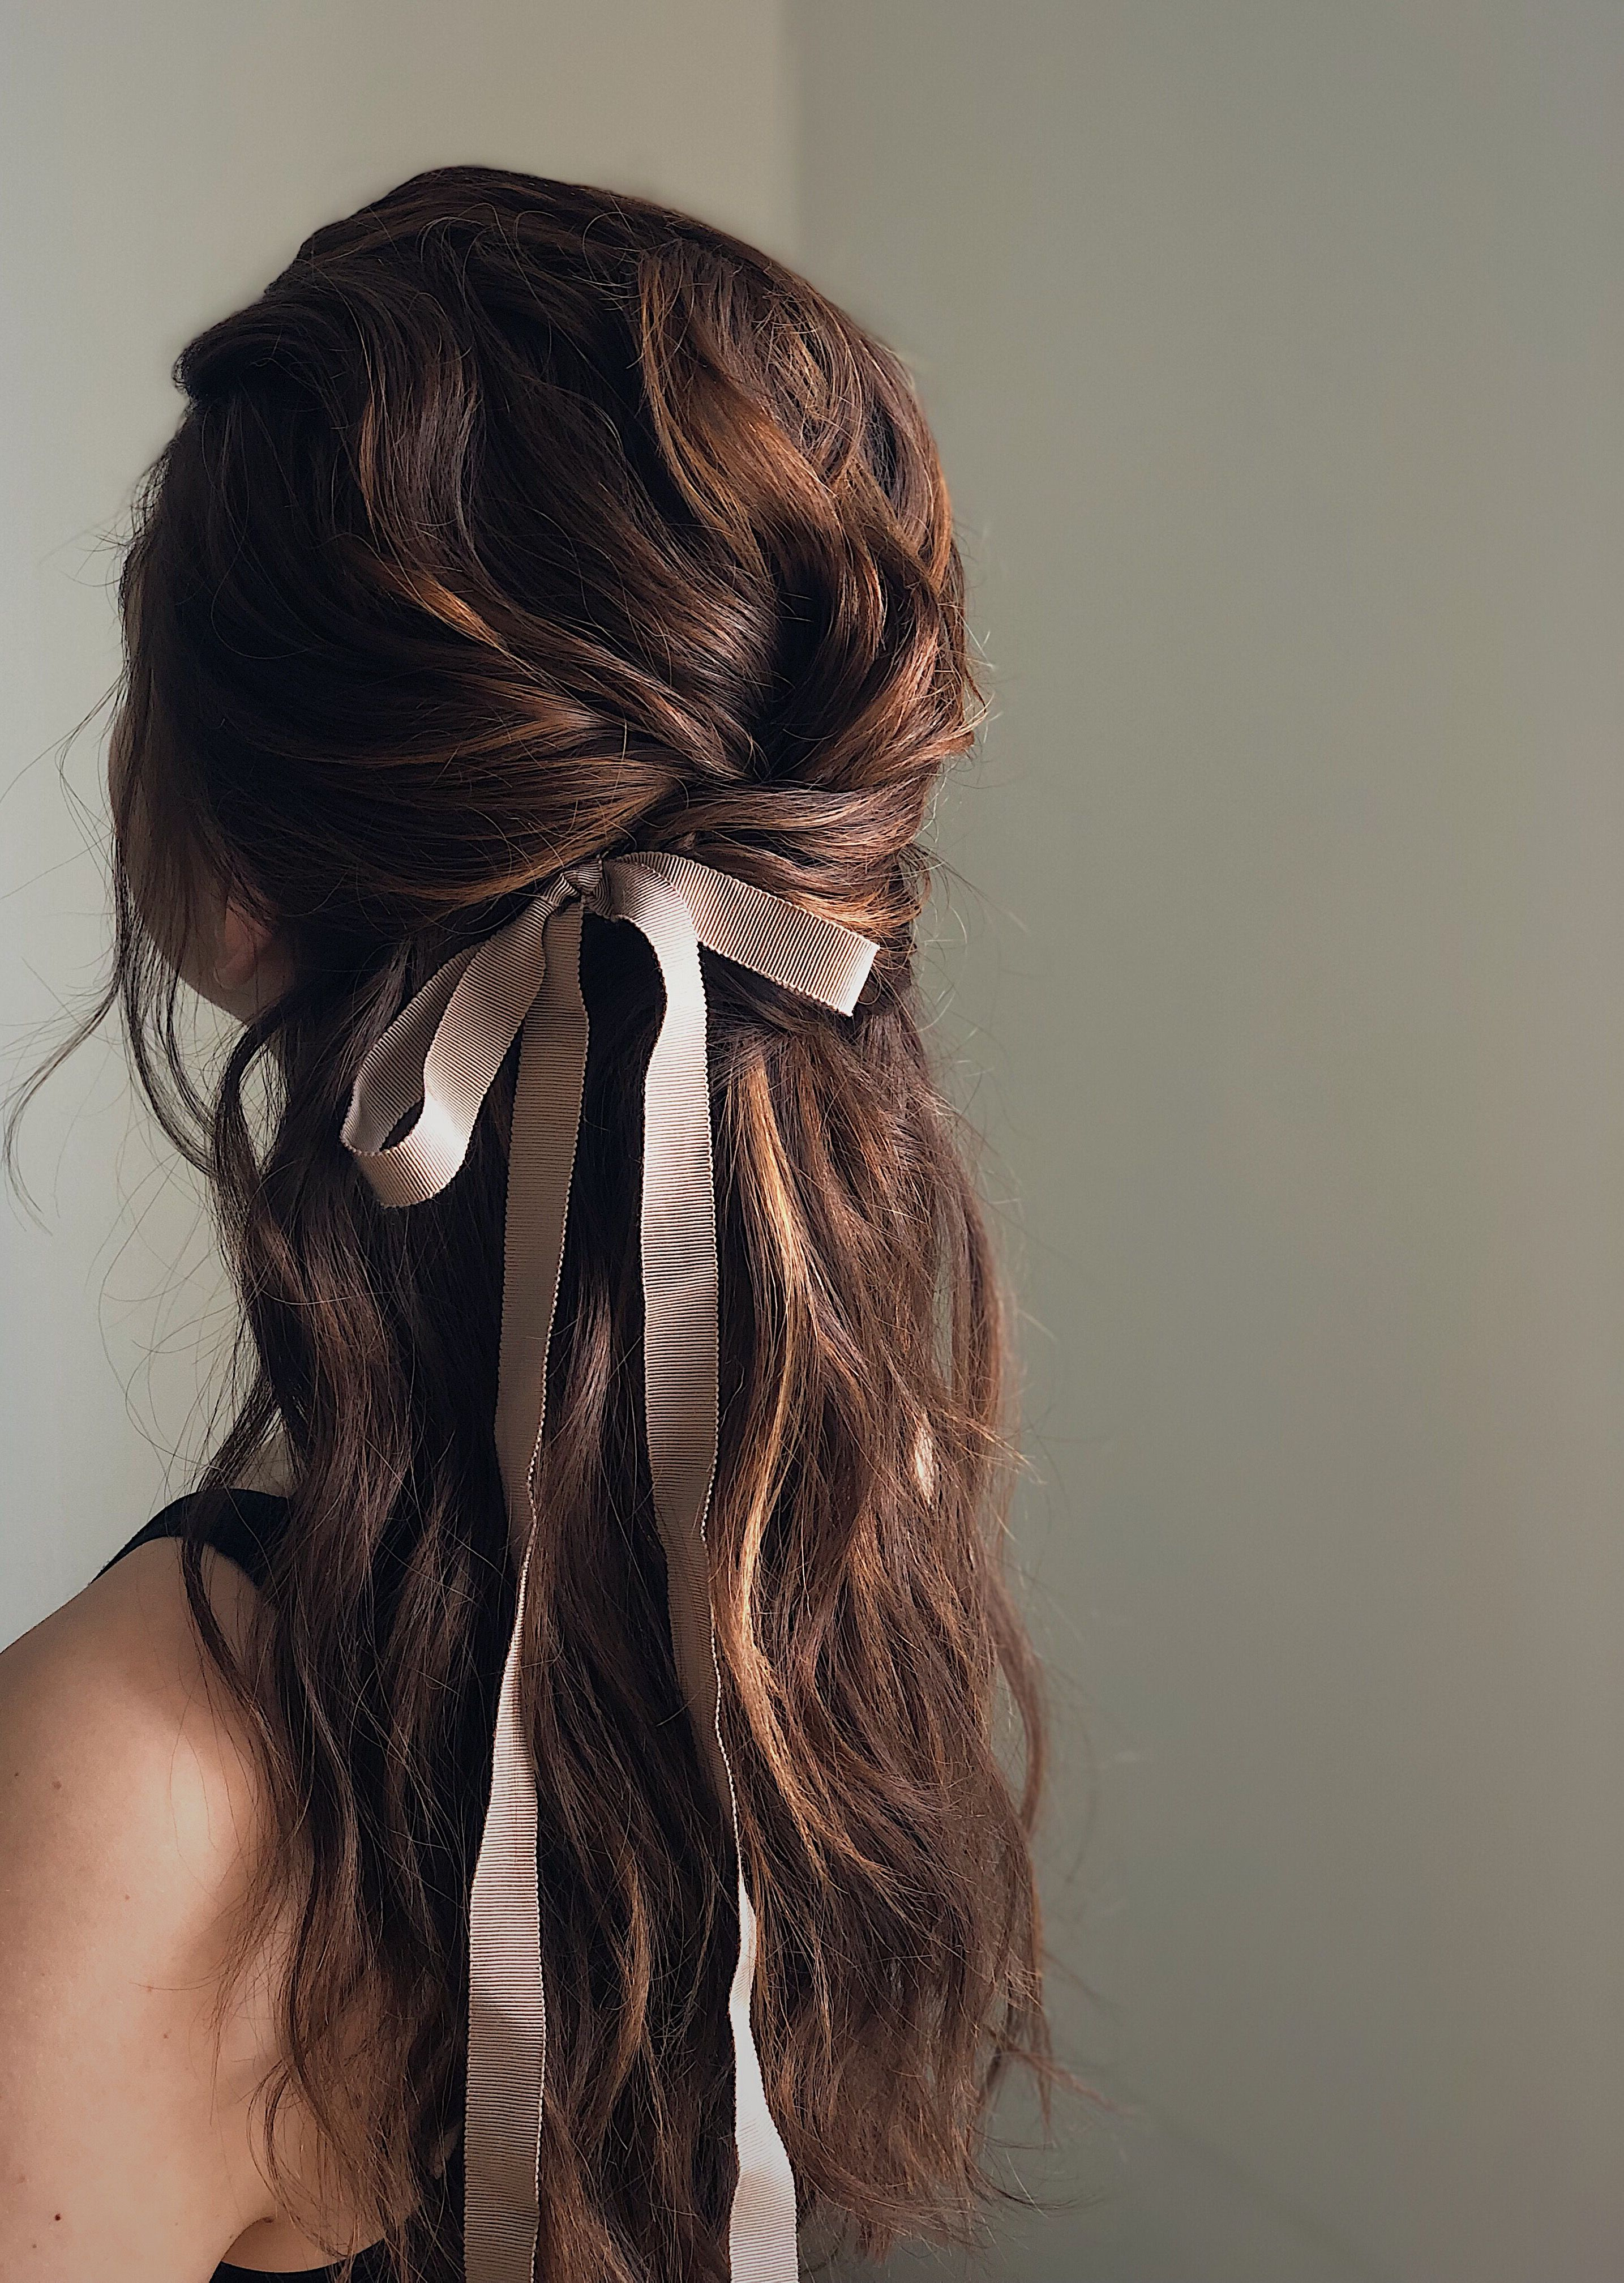 Hairstyles With Ribbons Half Up Half Down Hairstyles Cool Bridal Hairstyles Textured Updo Cool Wedding Hairstyle Ribbon Hairstyle Hair Styles Balayage Hair